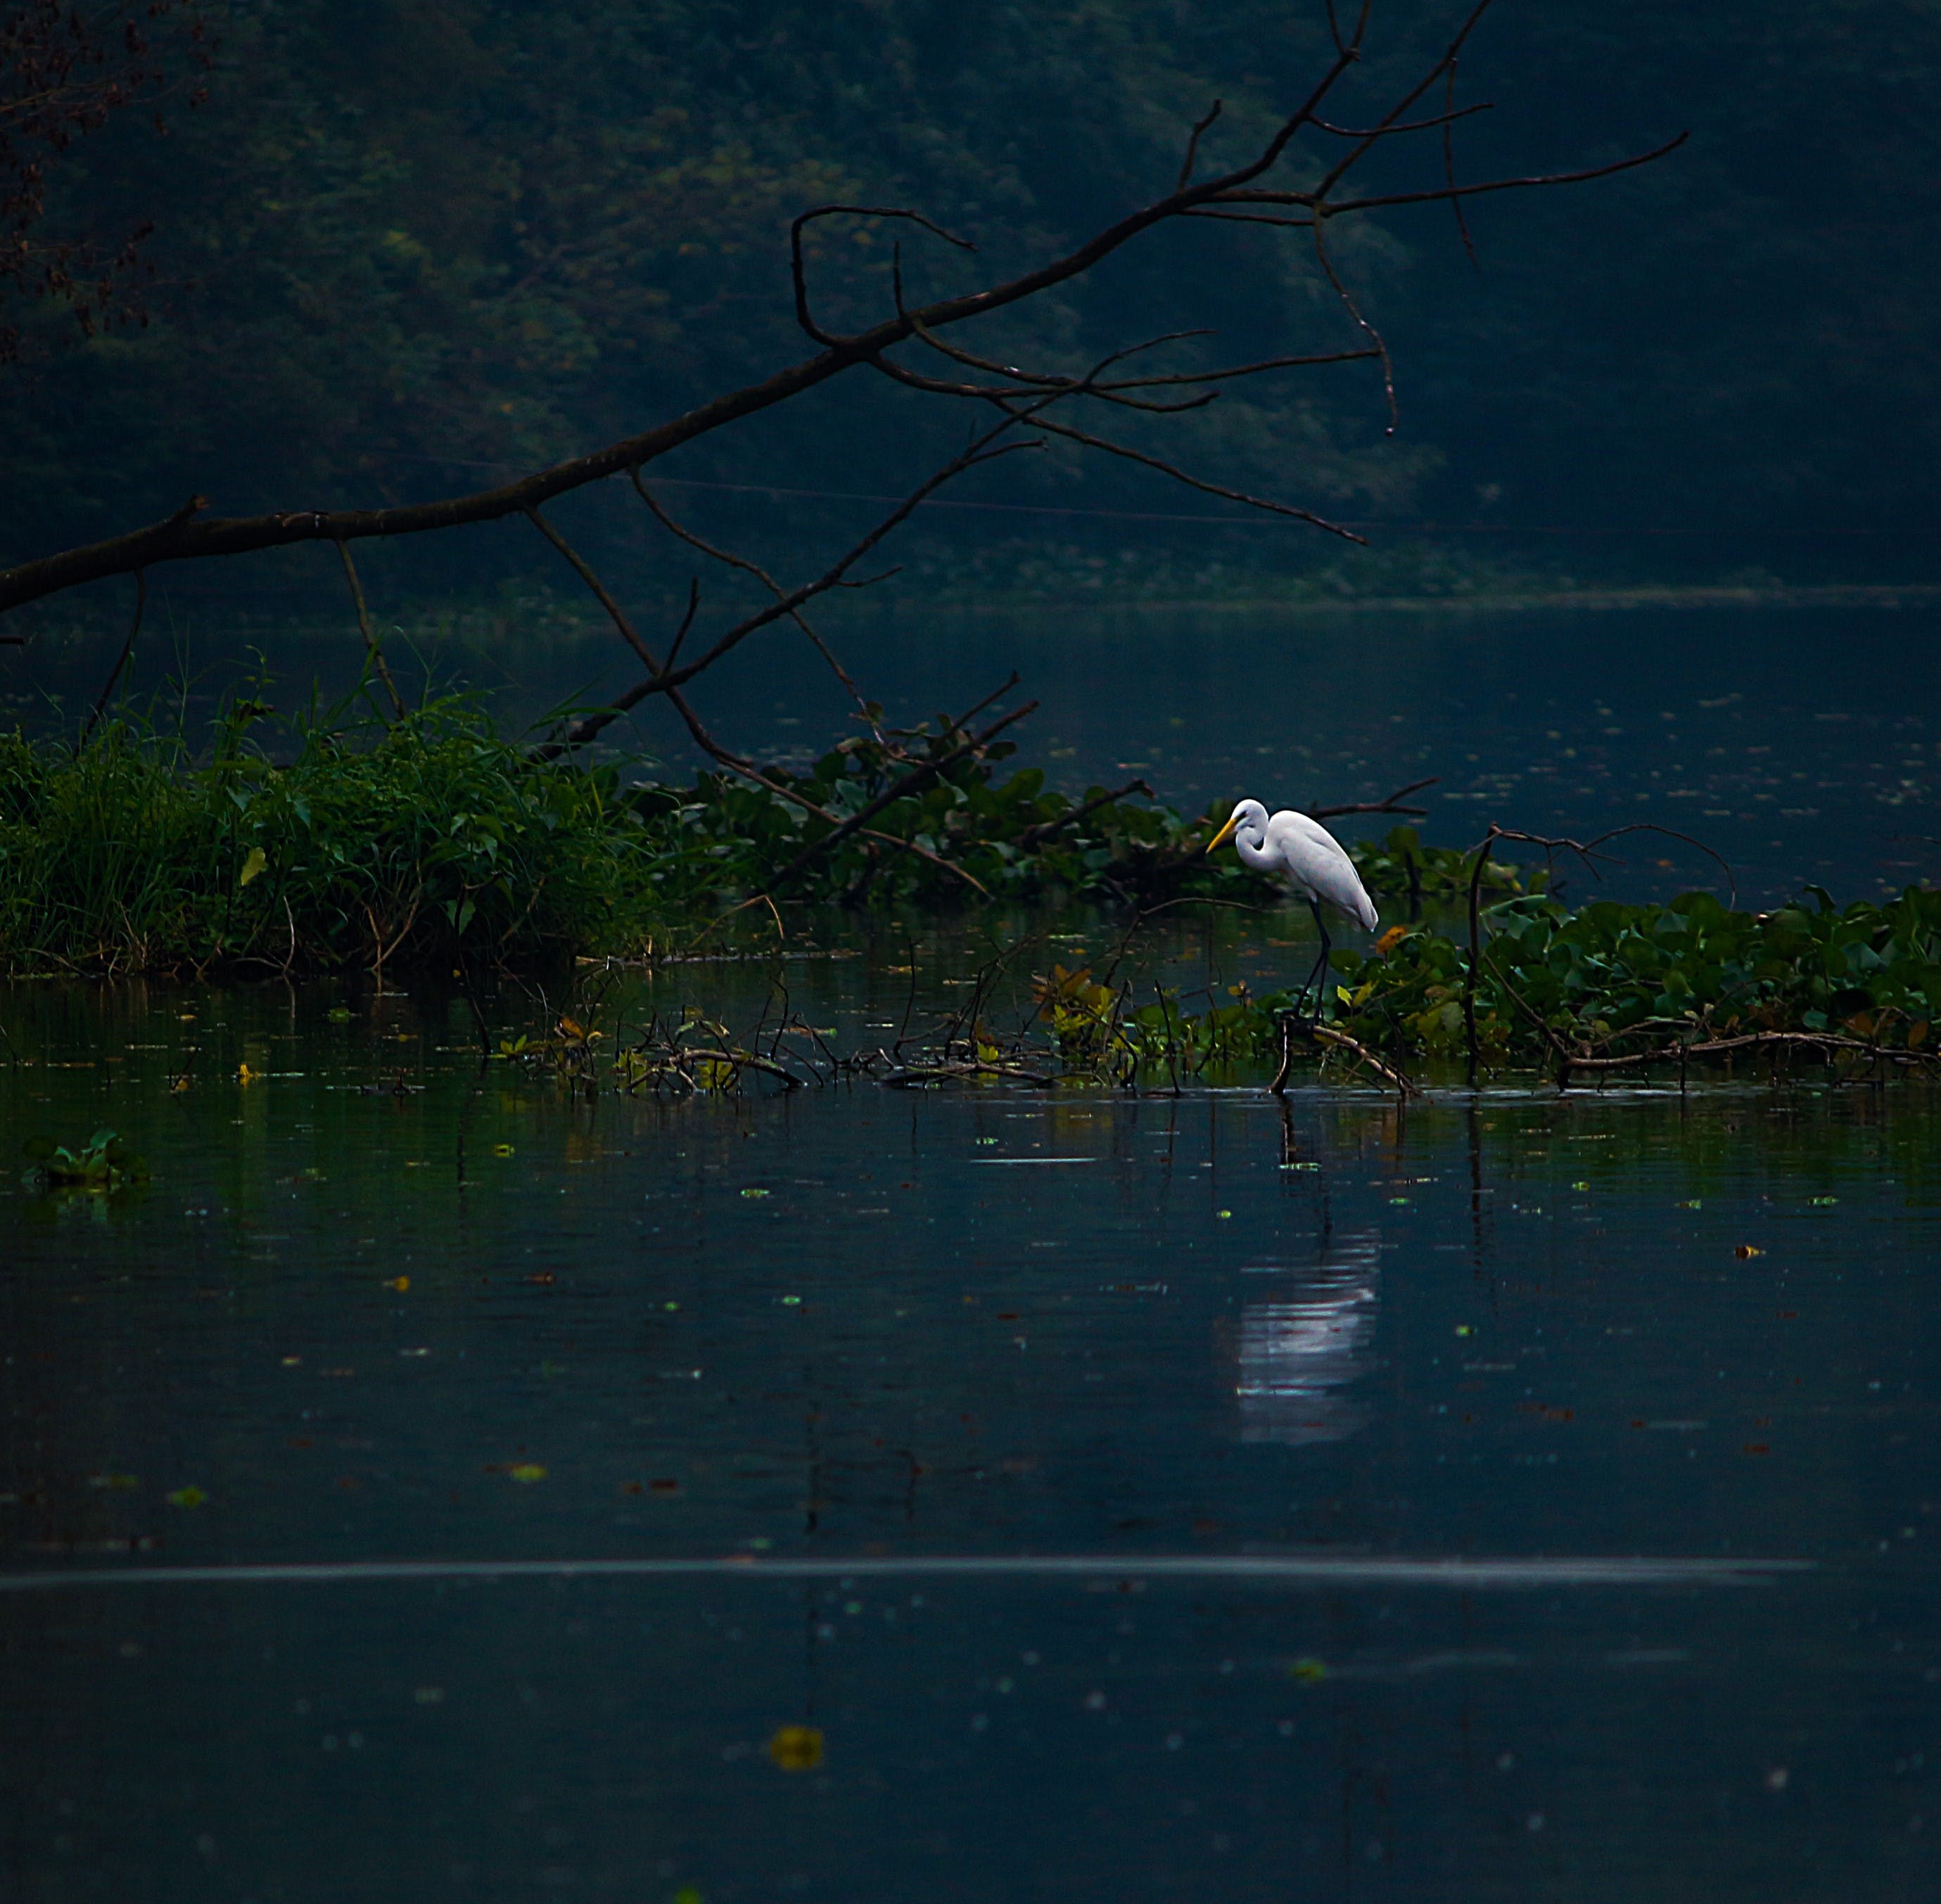 Photo of a Heron on Body of Water